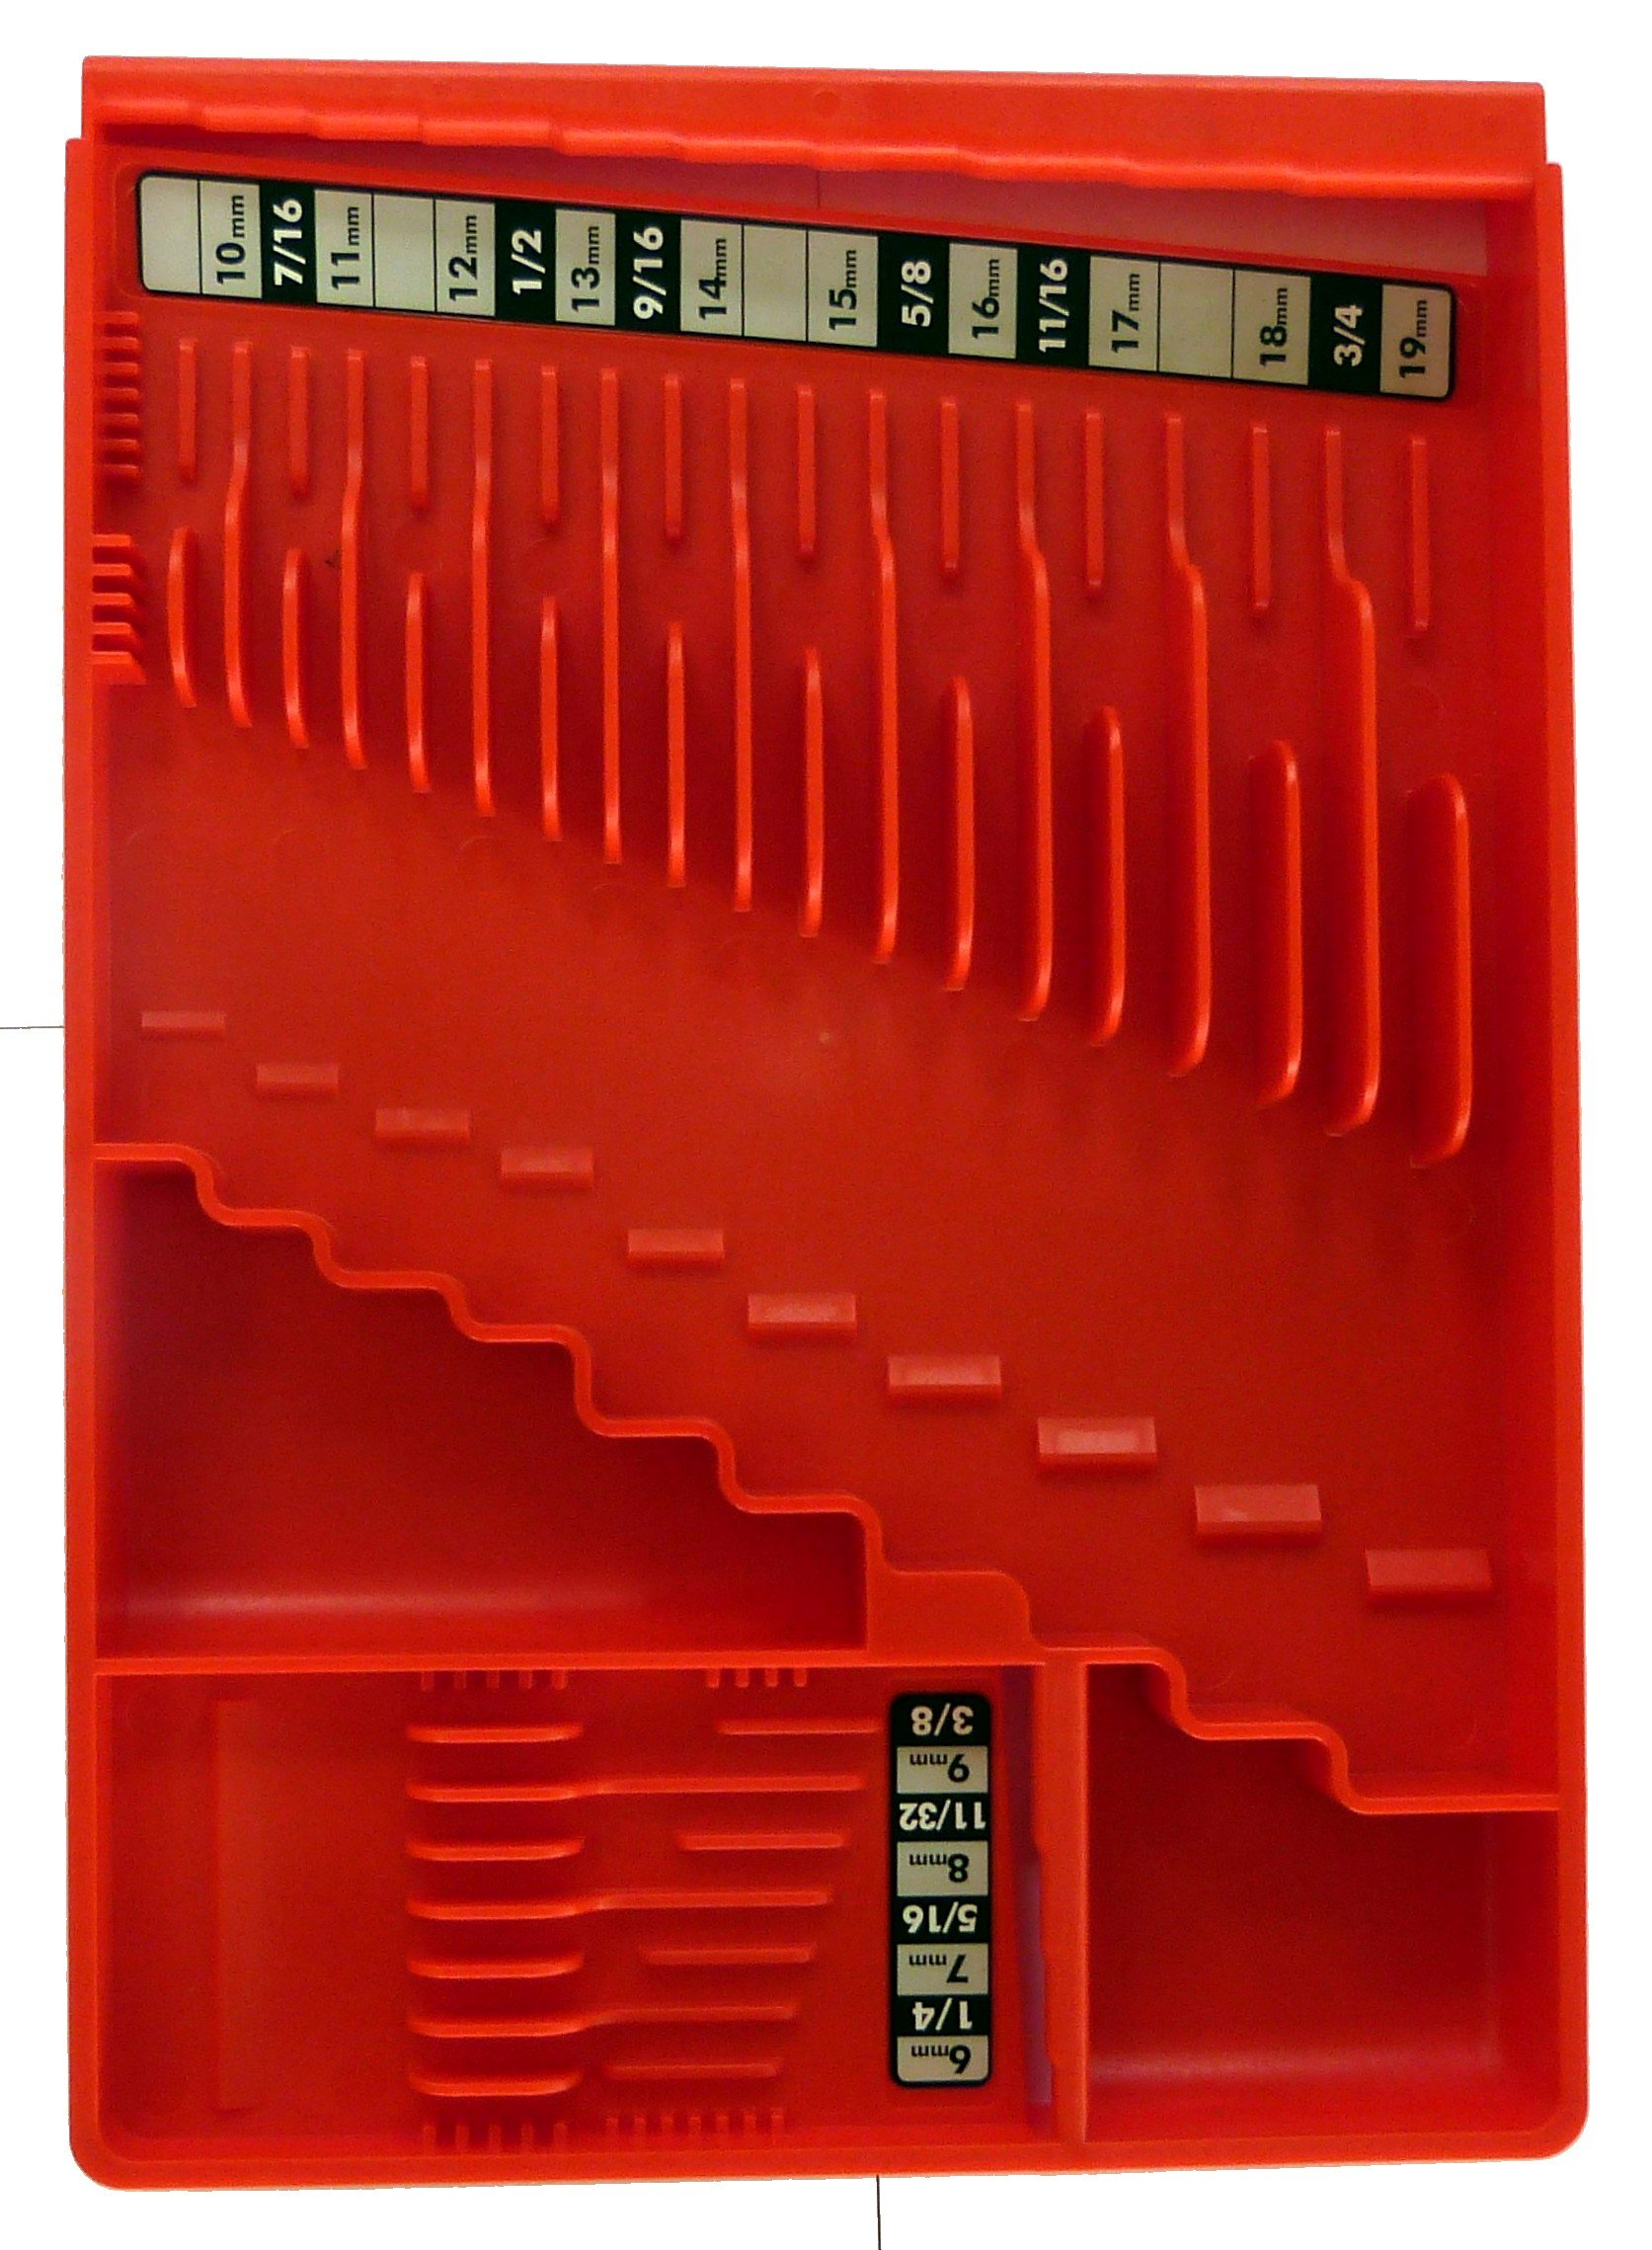 Tool Sorter Wrench Organizer - Red by Tool Sorter (Image #1)